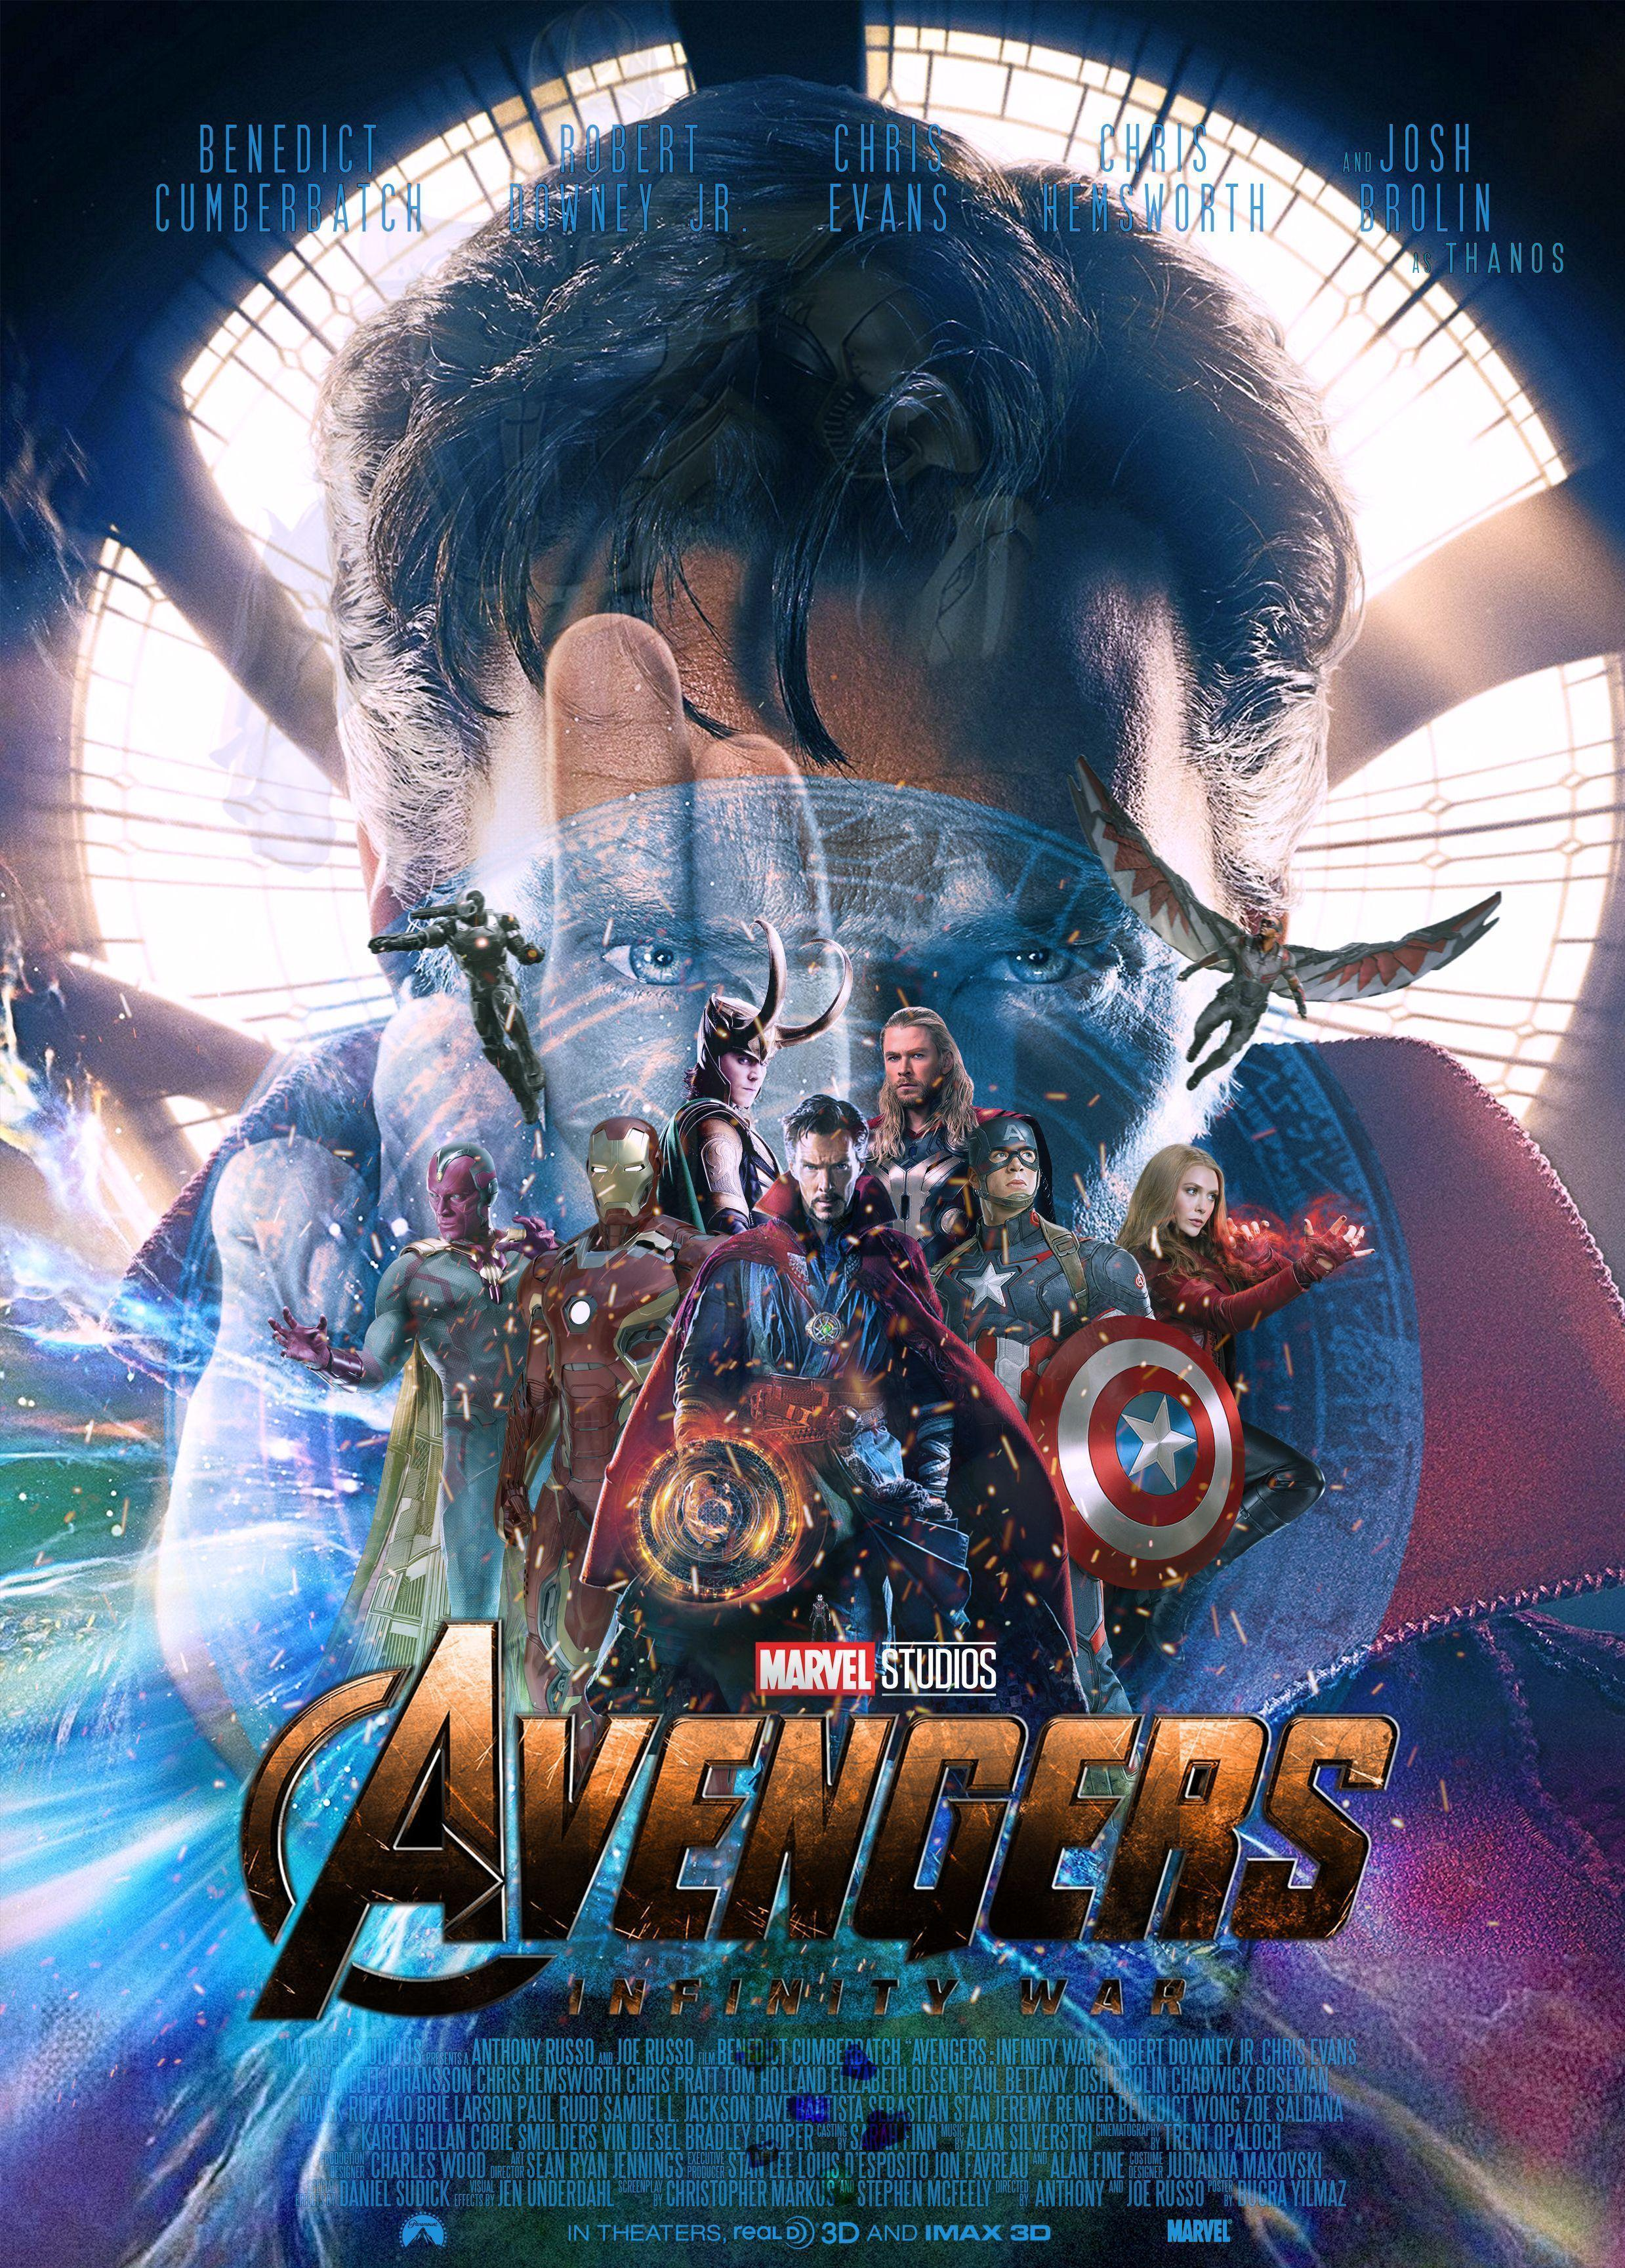 Avengers Android Wallpapers - Top Free Avengers Android